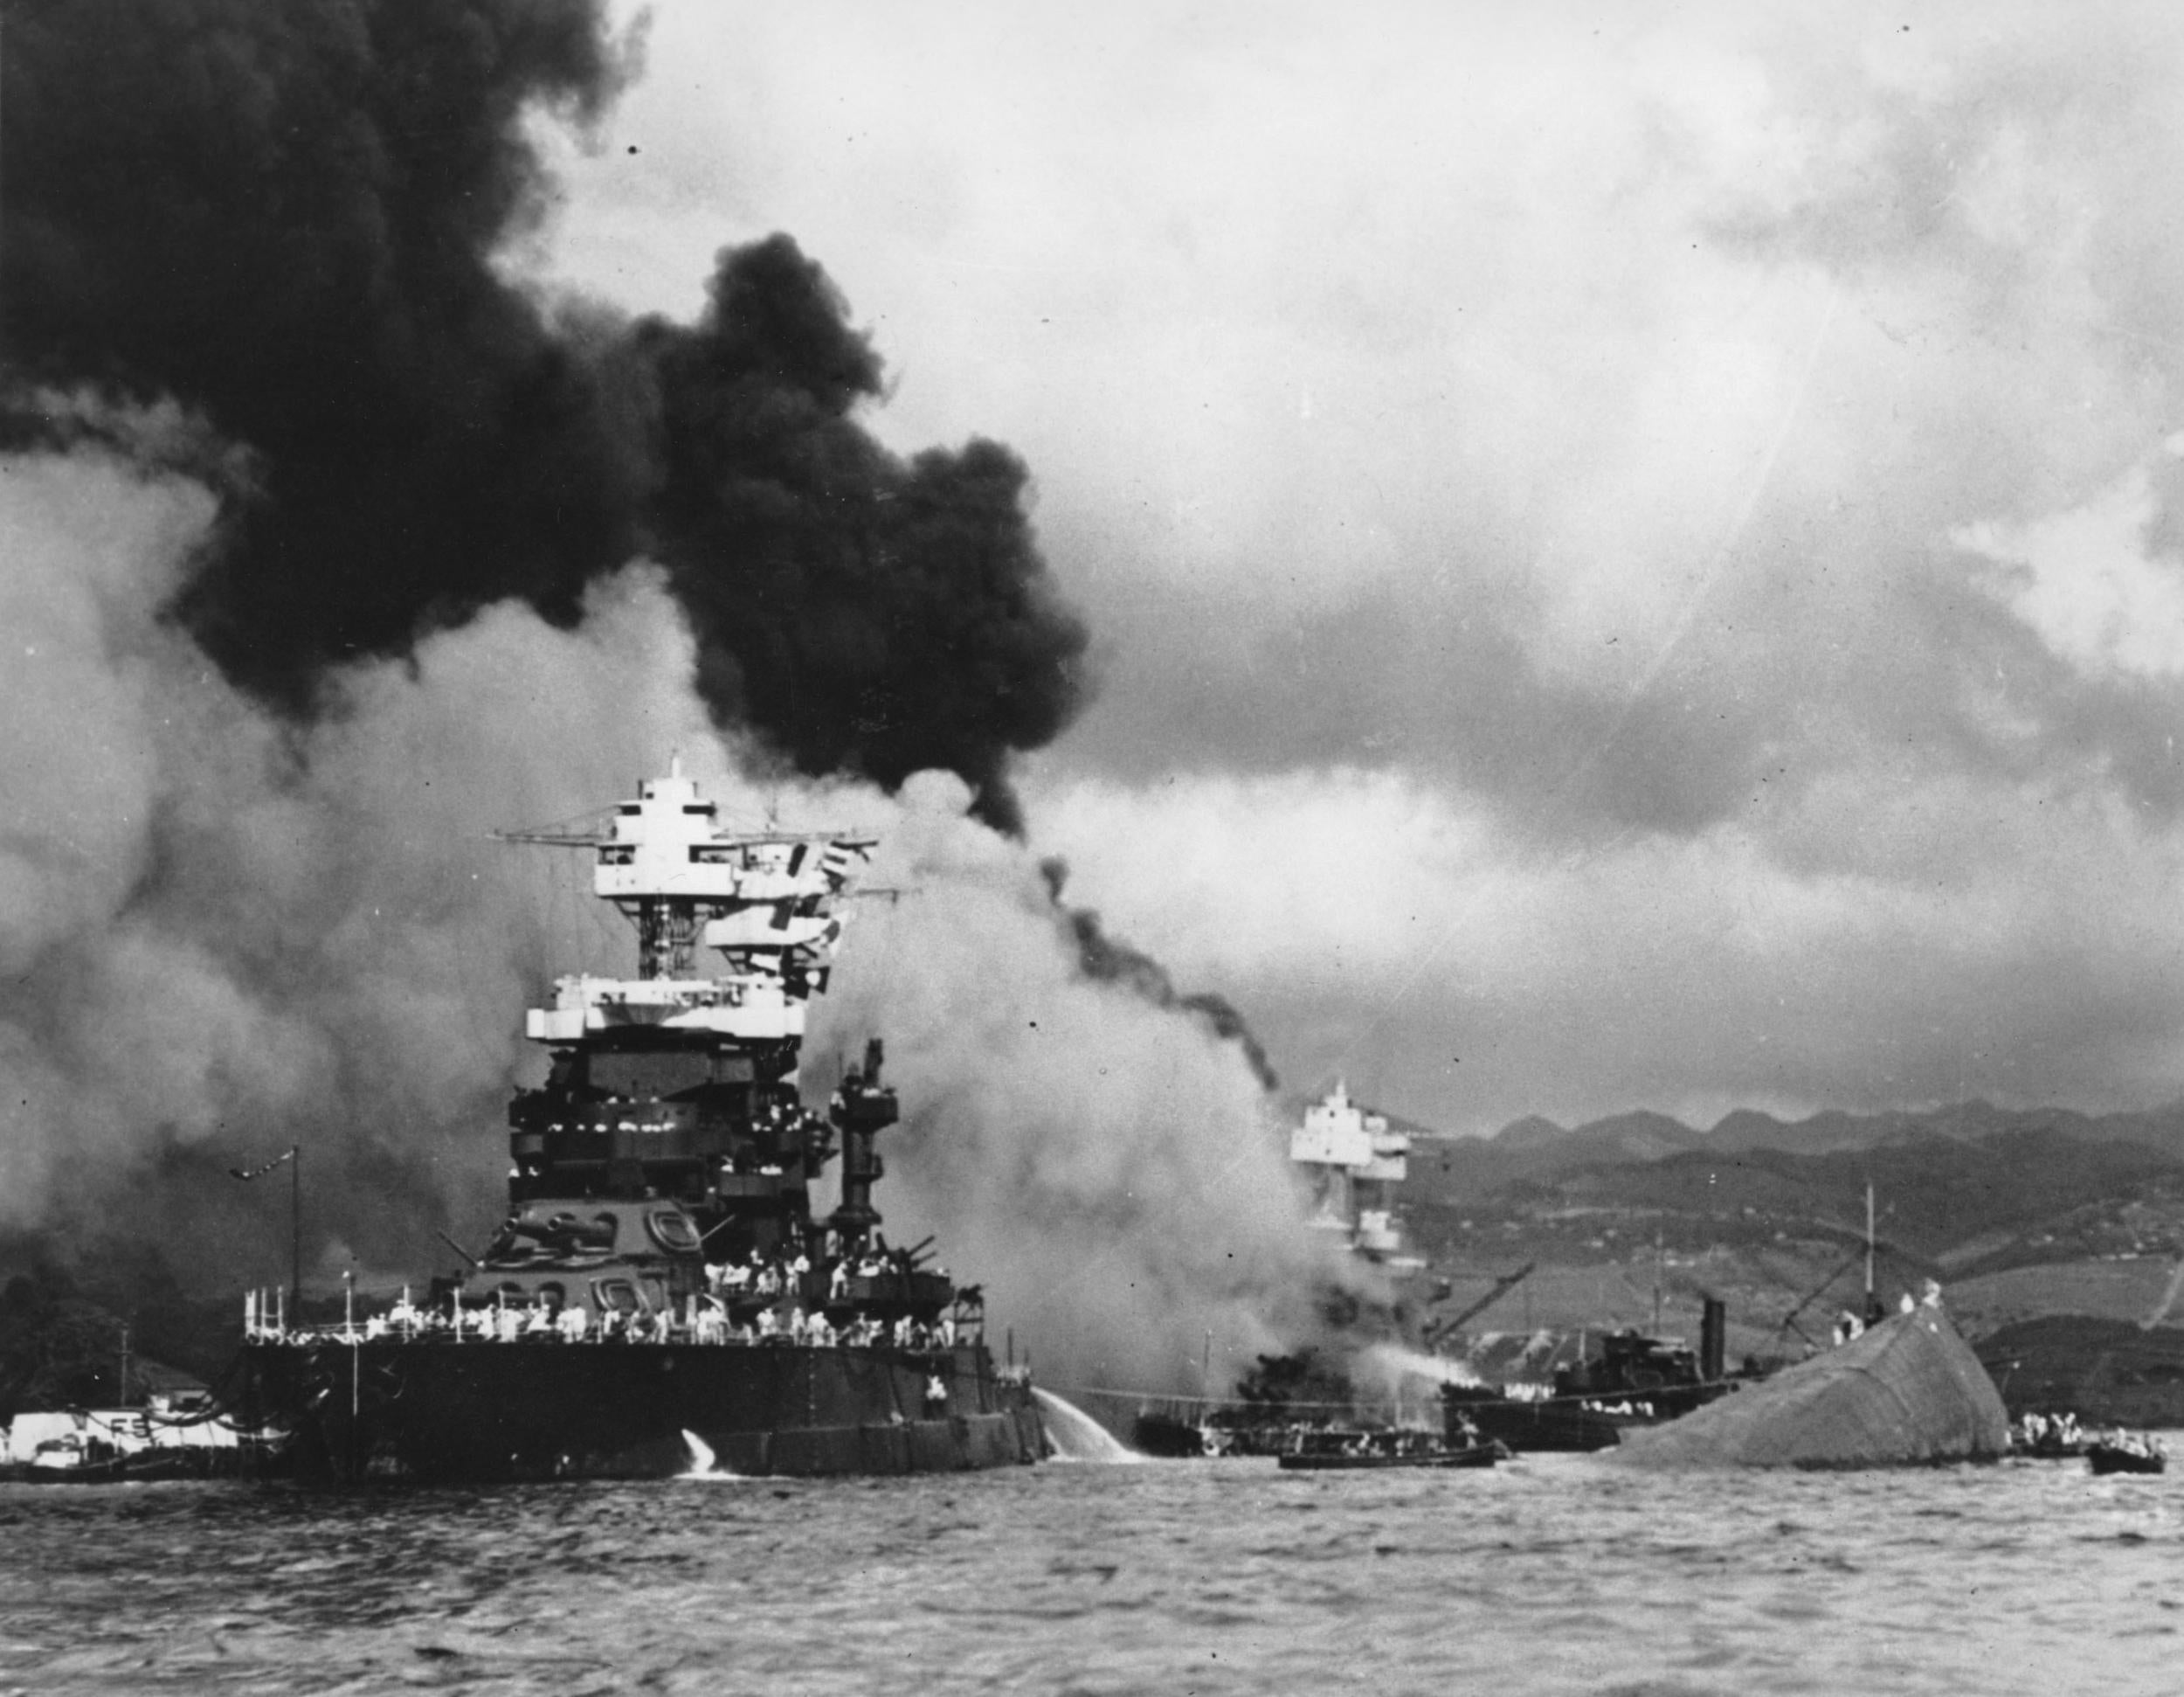 Pearl Harbour Remembrance Day: Why Americans observe 'a day that will live in infamy'